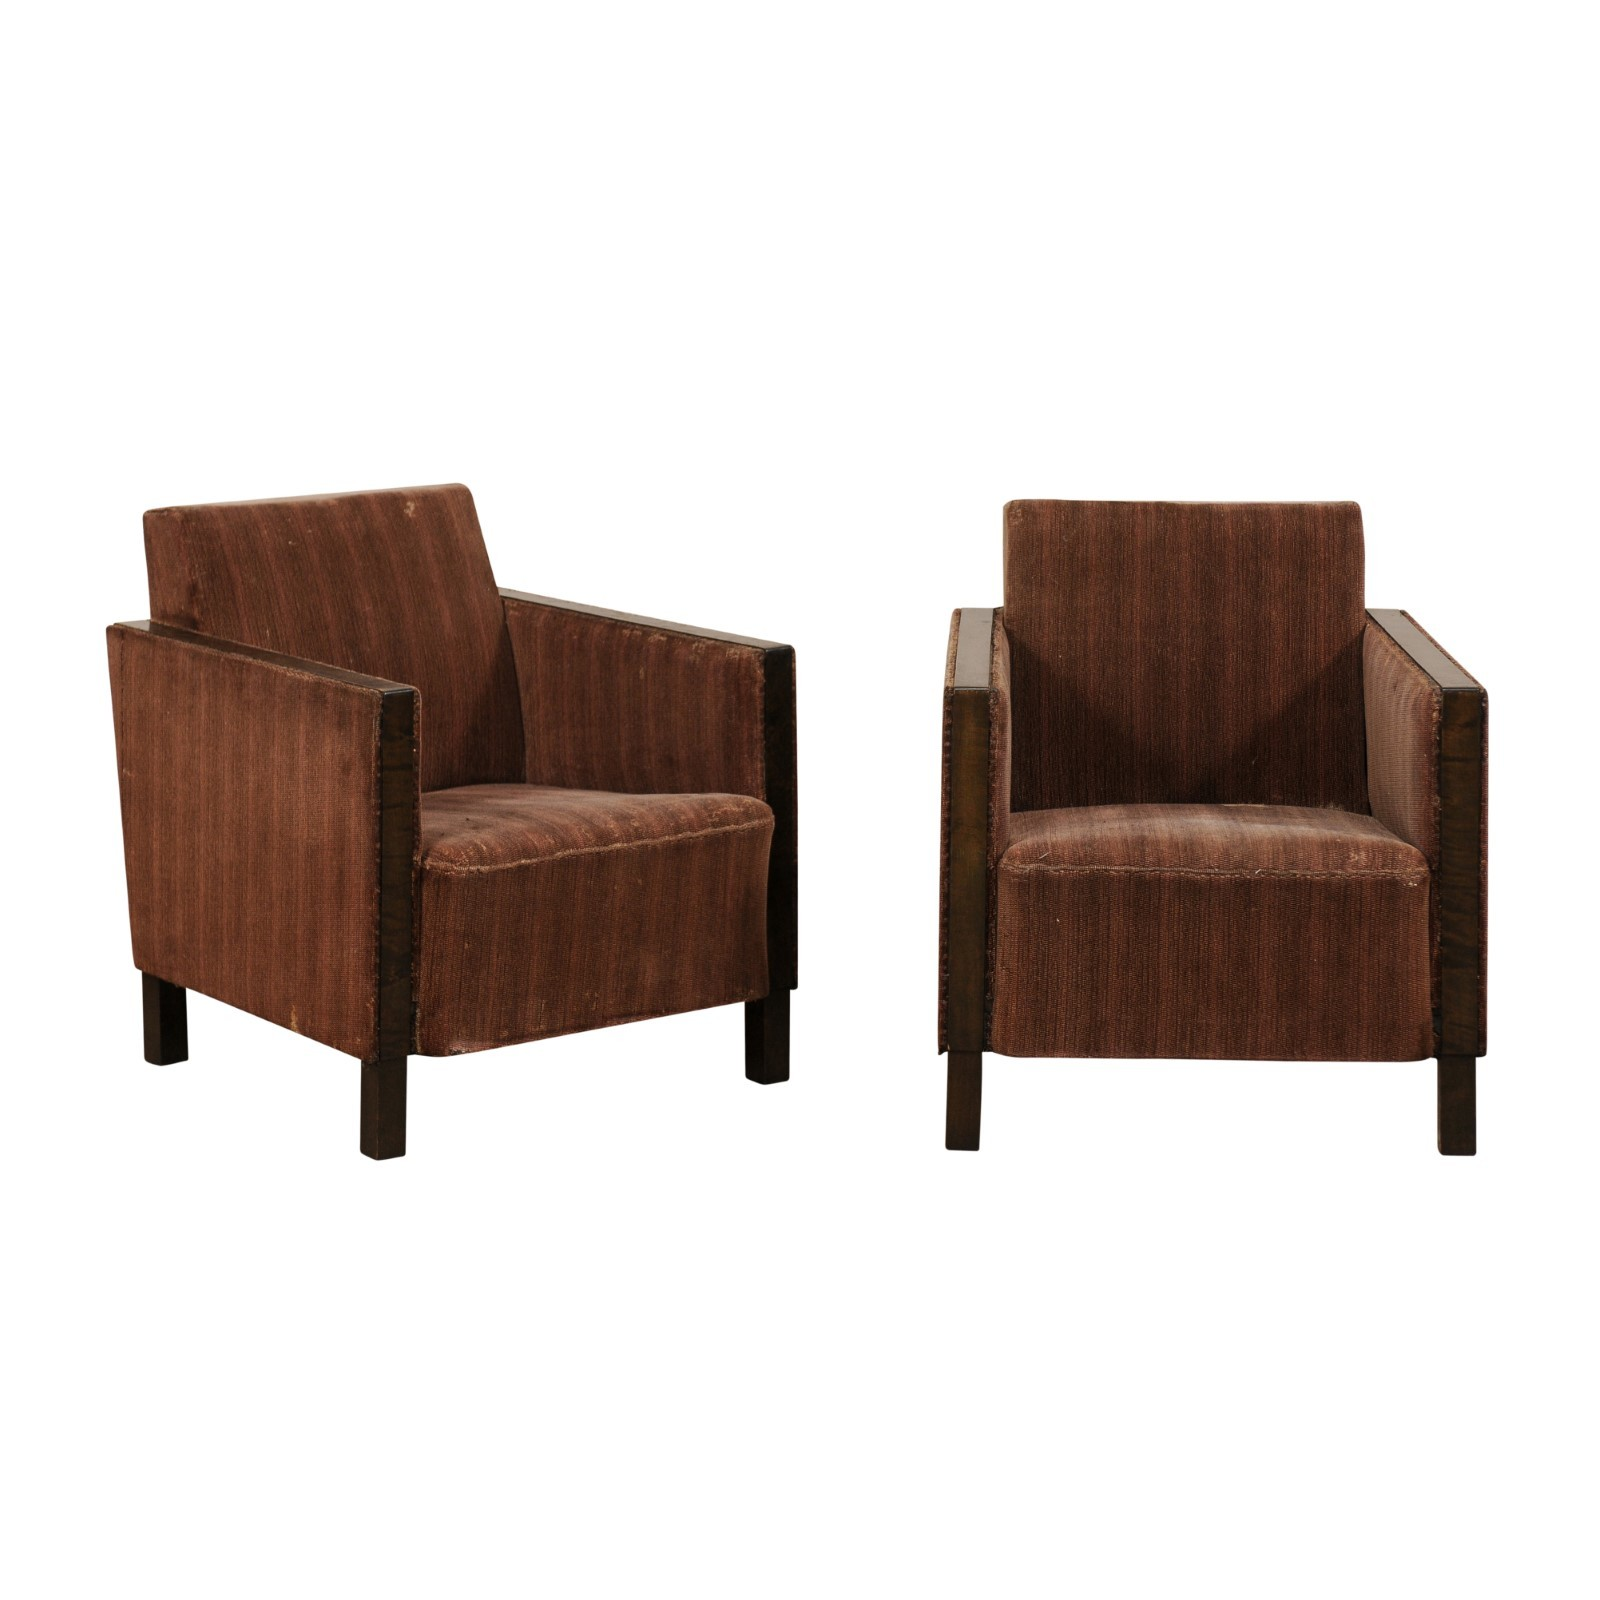 Pair Swedish Mid-Century Club Chairs